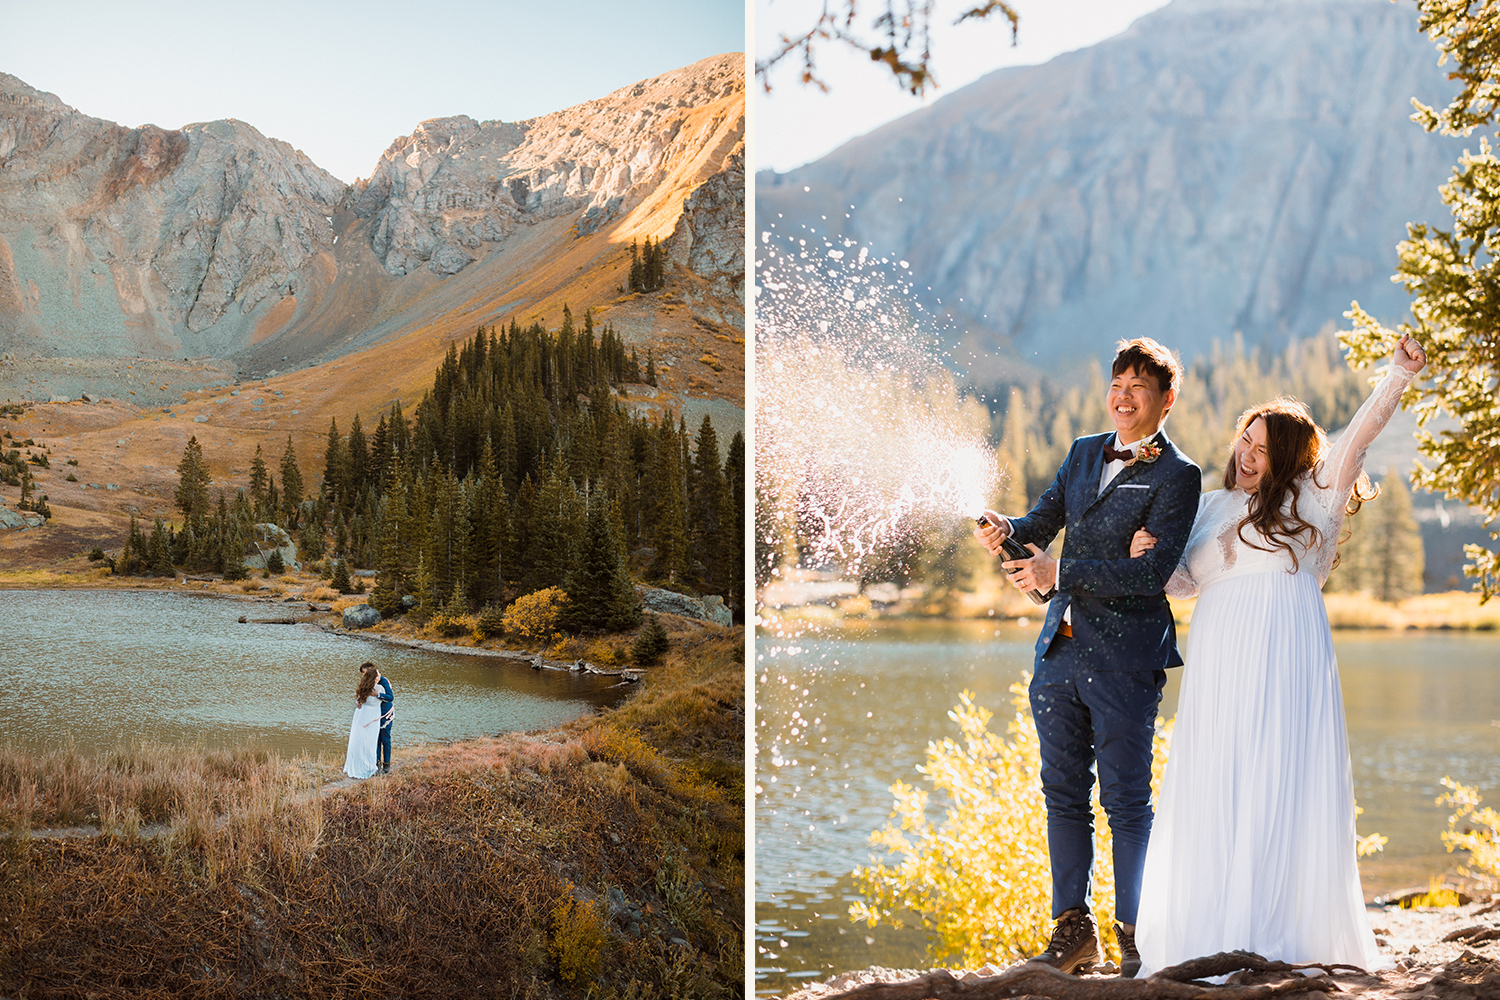 bride and groom on elopement day near an alpine lake in the mountains